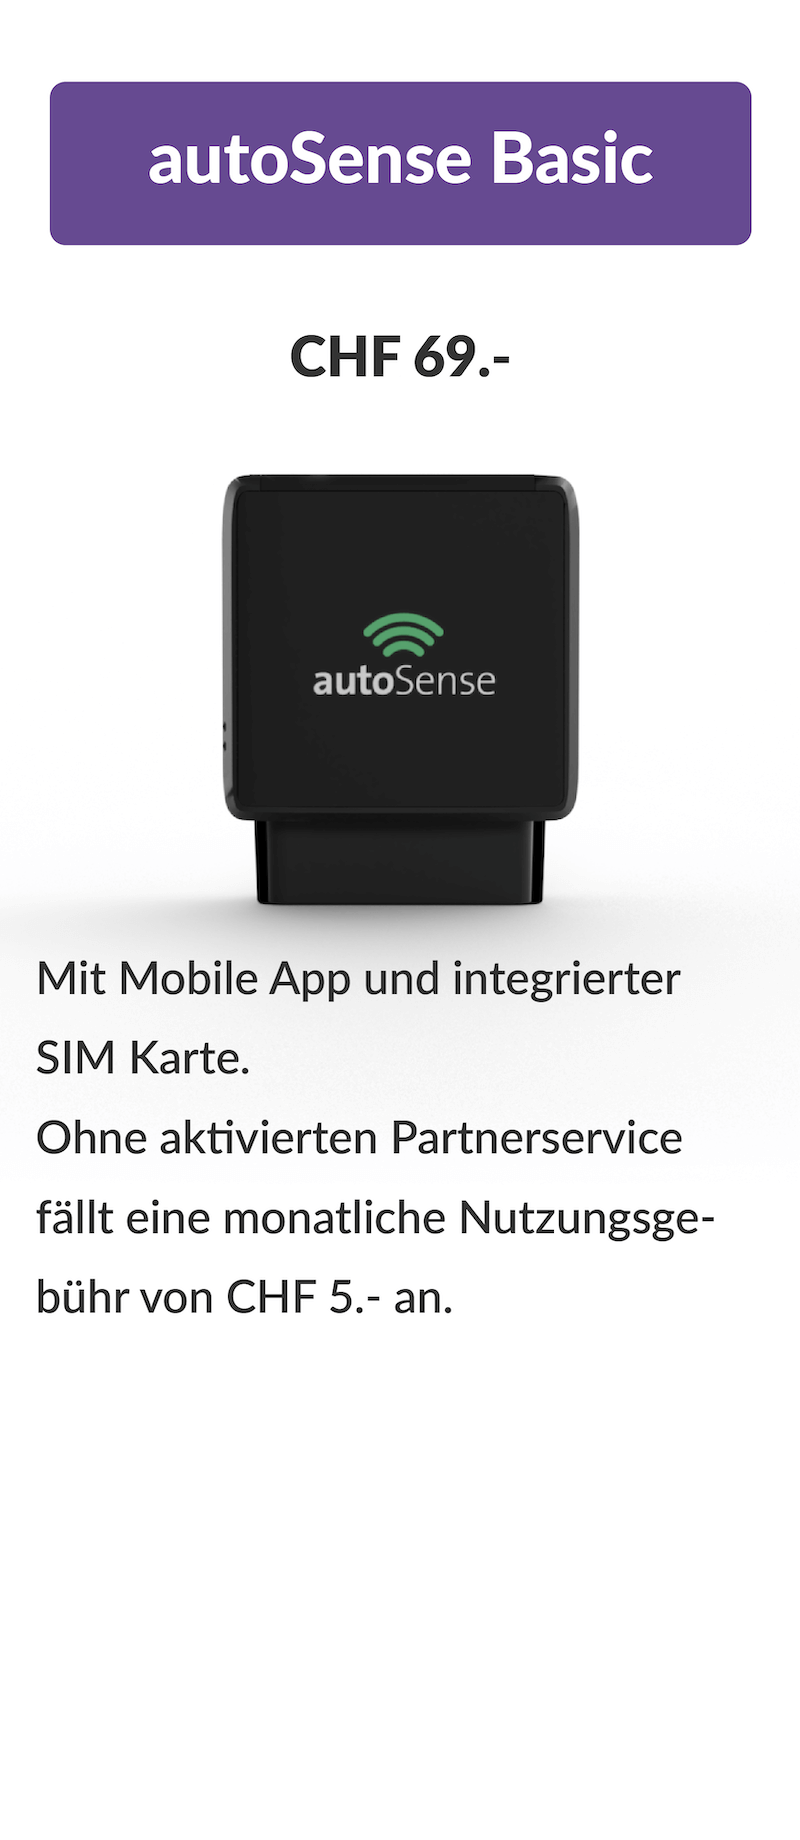 autoSense Basic - With the autoSense adapter, you can supplement the autoSense app and activate numerous additional functions.